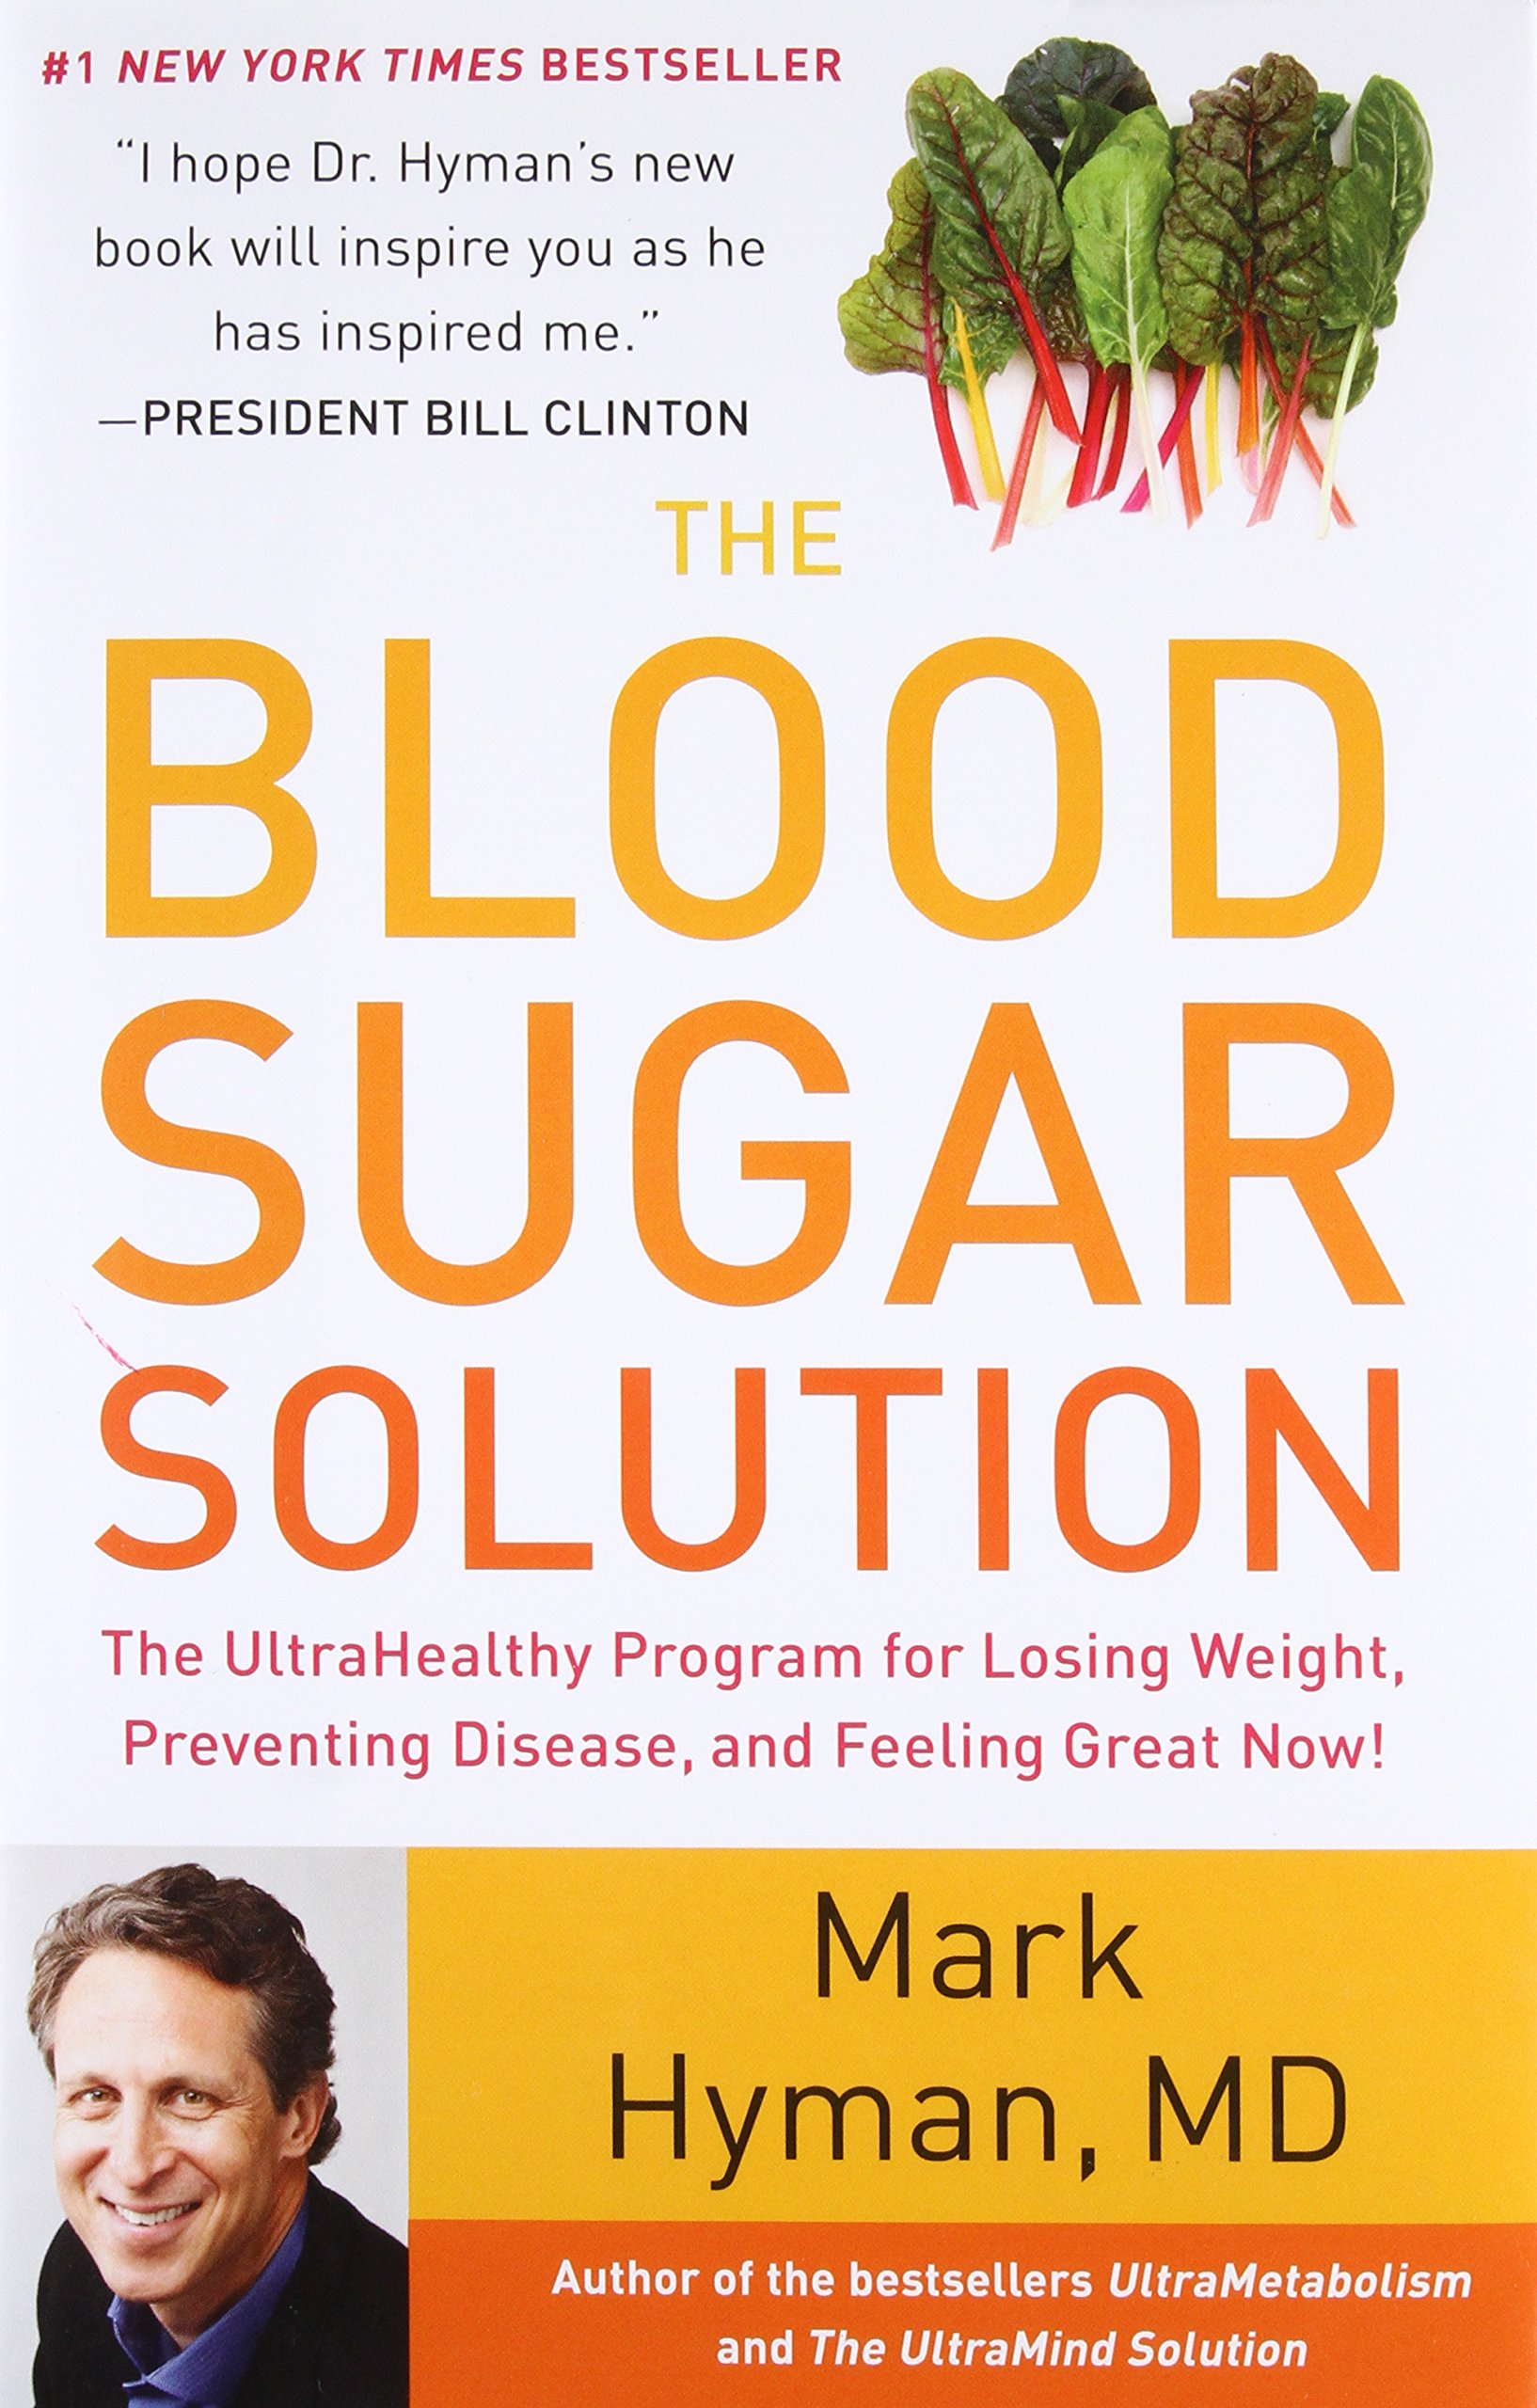 Dr. Mark Hyman on The Blood Sugar Solution